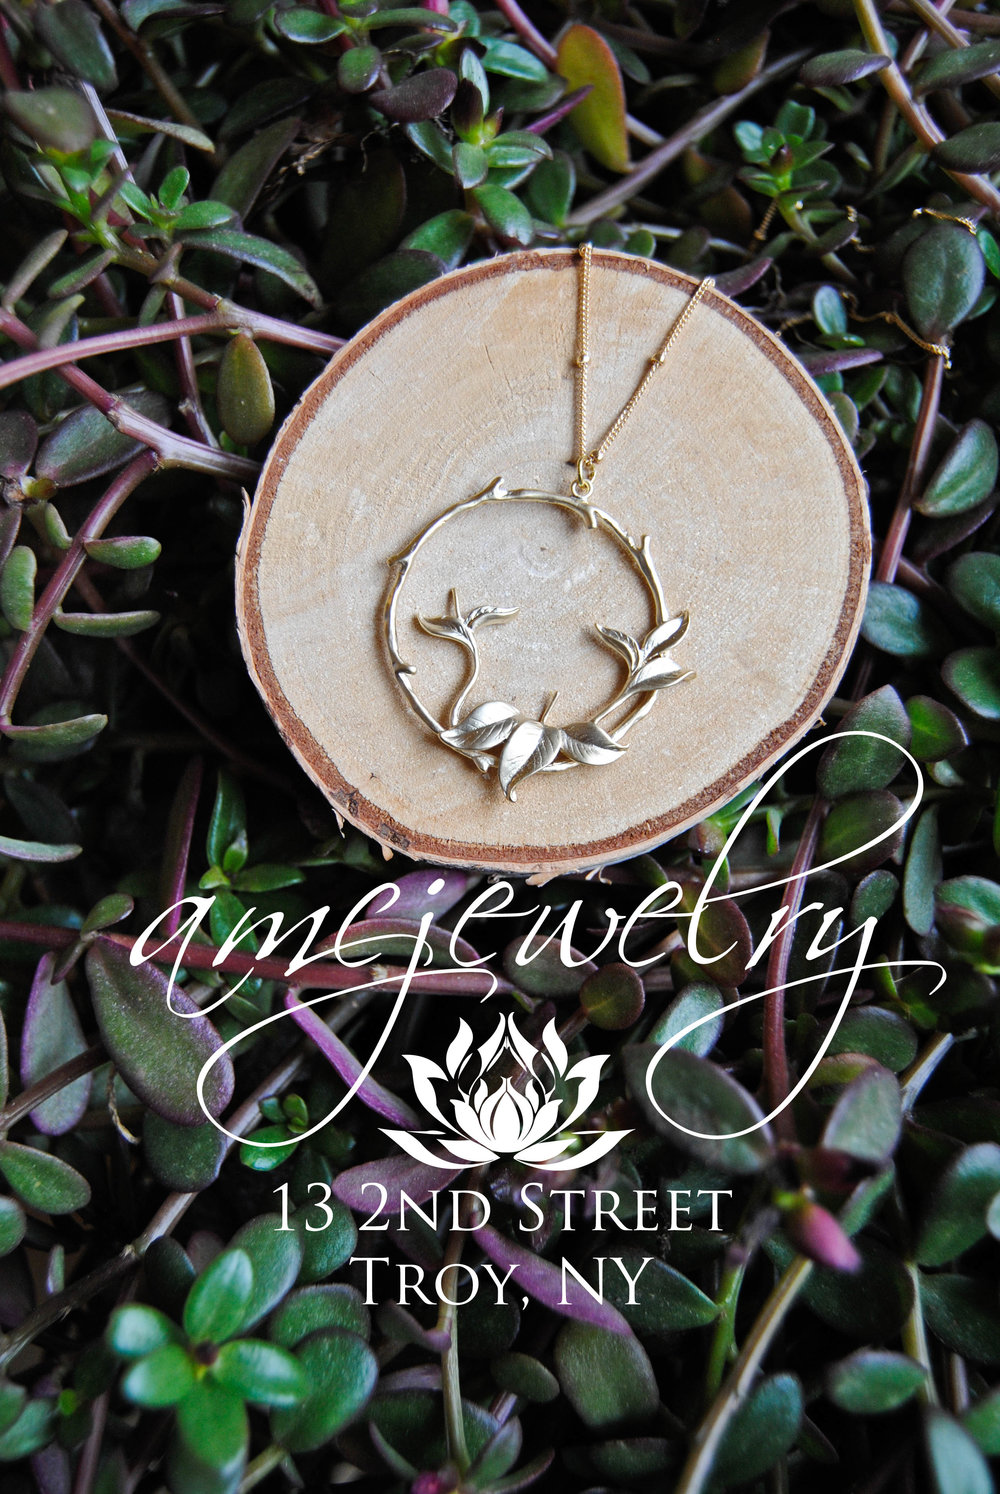 Friday March 3rd 5-7: One of Our Featured Artists is back for January!! AMCooper Jewelry. They have just opened their first shop in Troy but have been selling at Farmers Markets and Pop Up Events previously.  http://www.amcjewelry.com